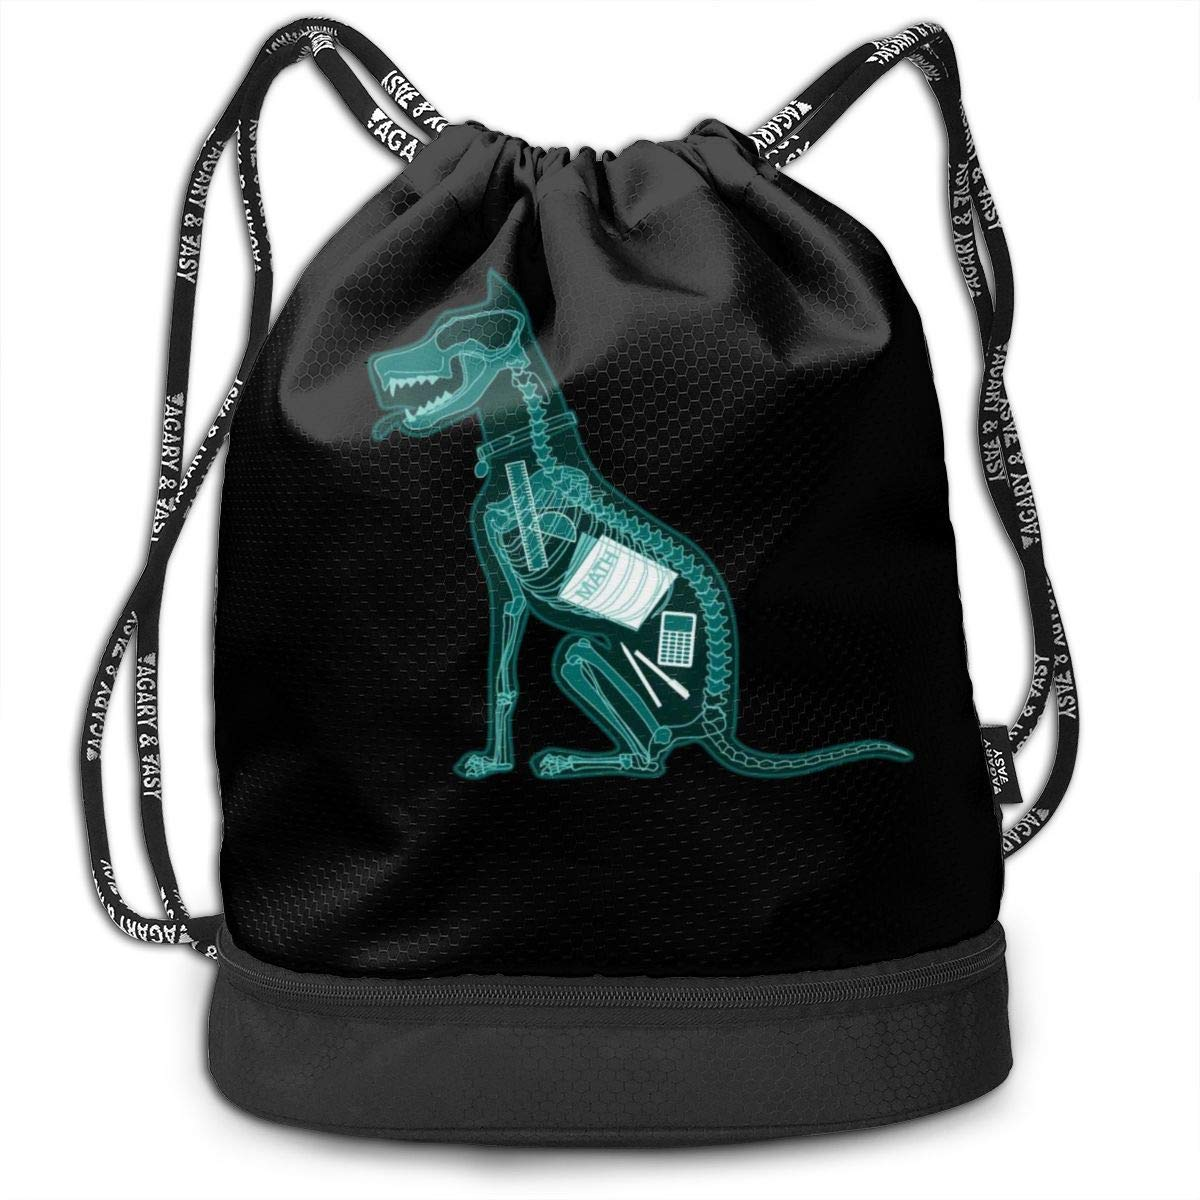 Drawstring Backpack DOG MATH Bags Knapsack For Hiking